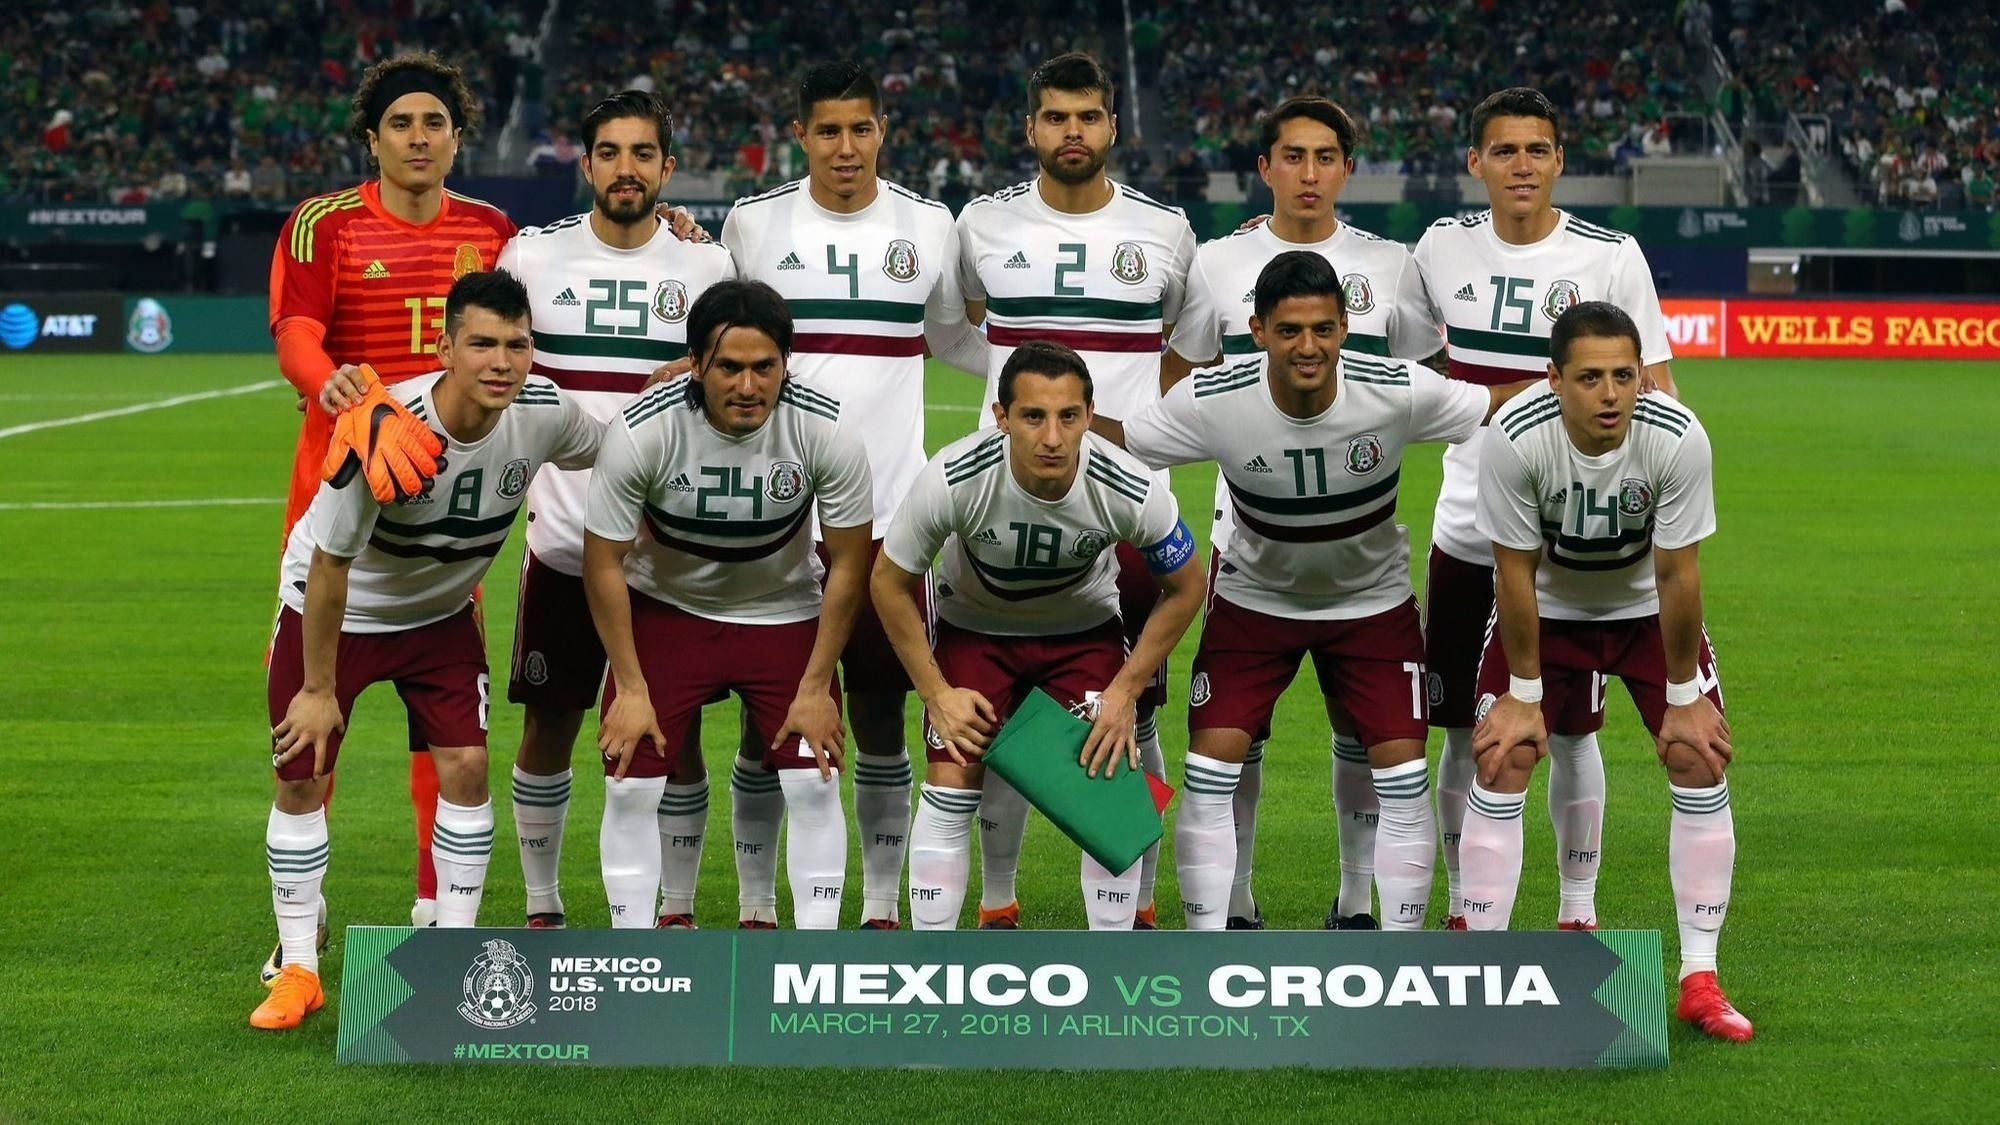 2000x1125 - Mexican Soccer Team 2018 29